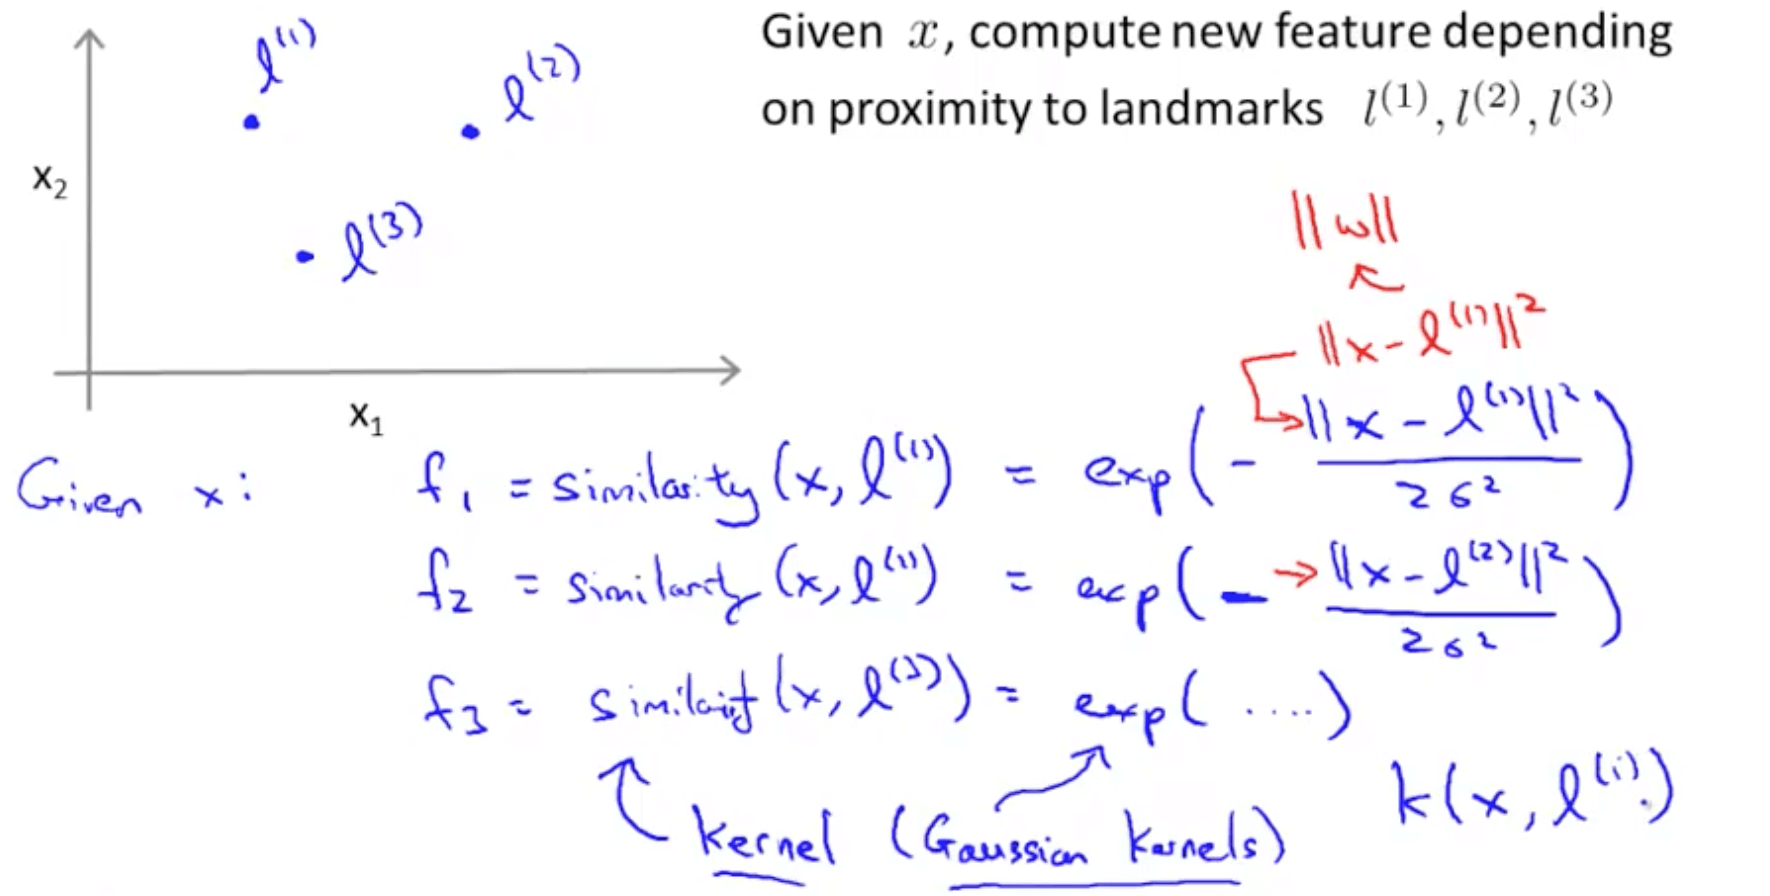 Support Vector Machines (SVMs) | Machine Learning, Deep